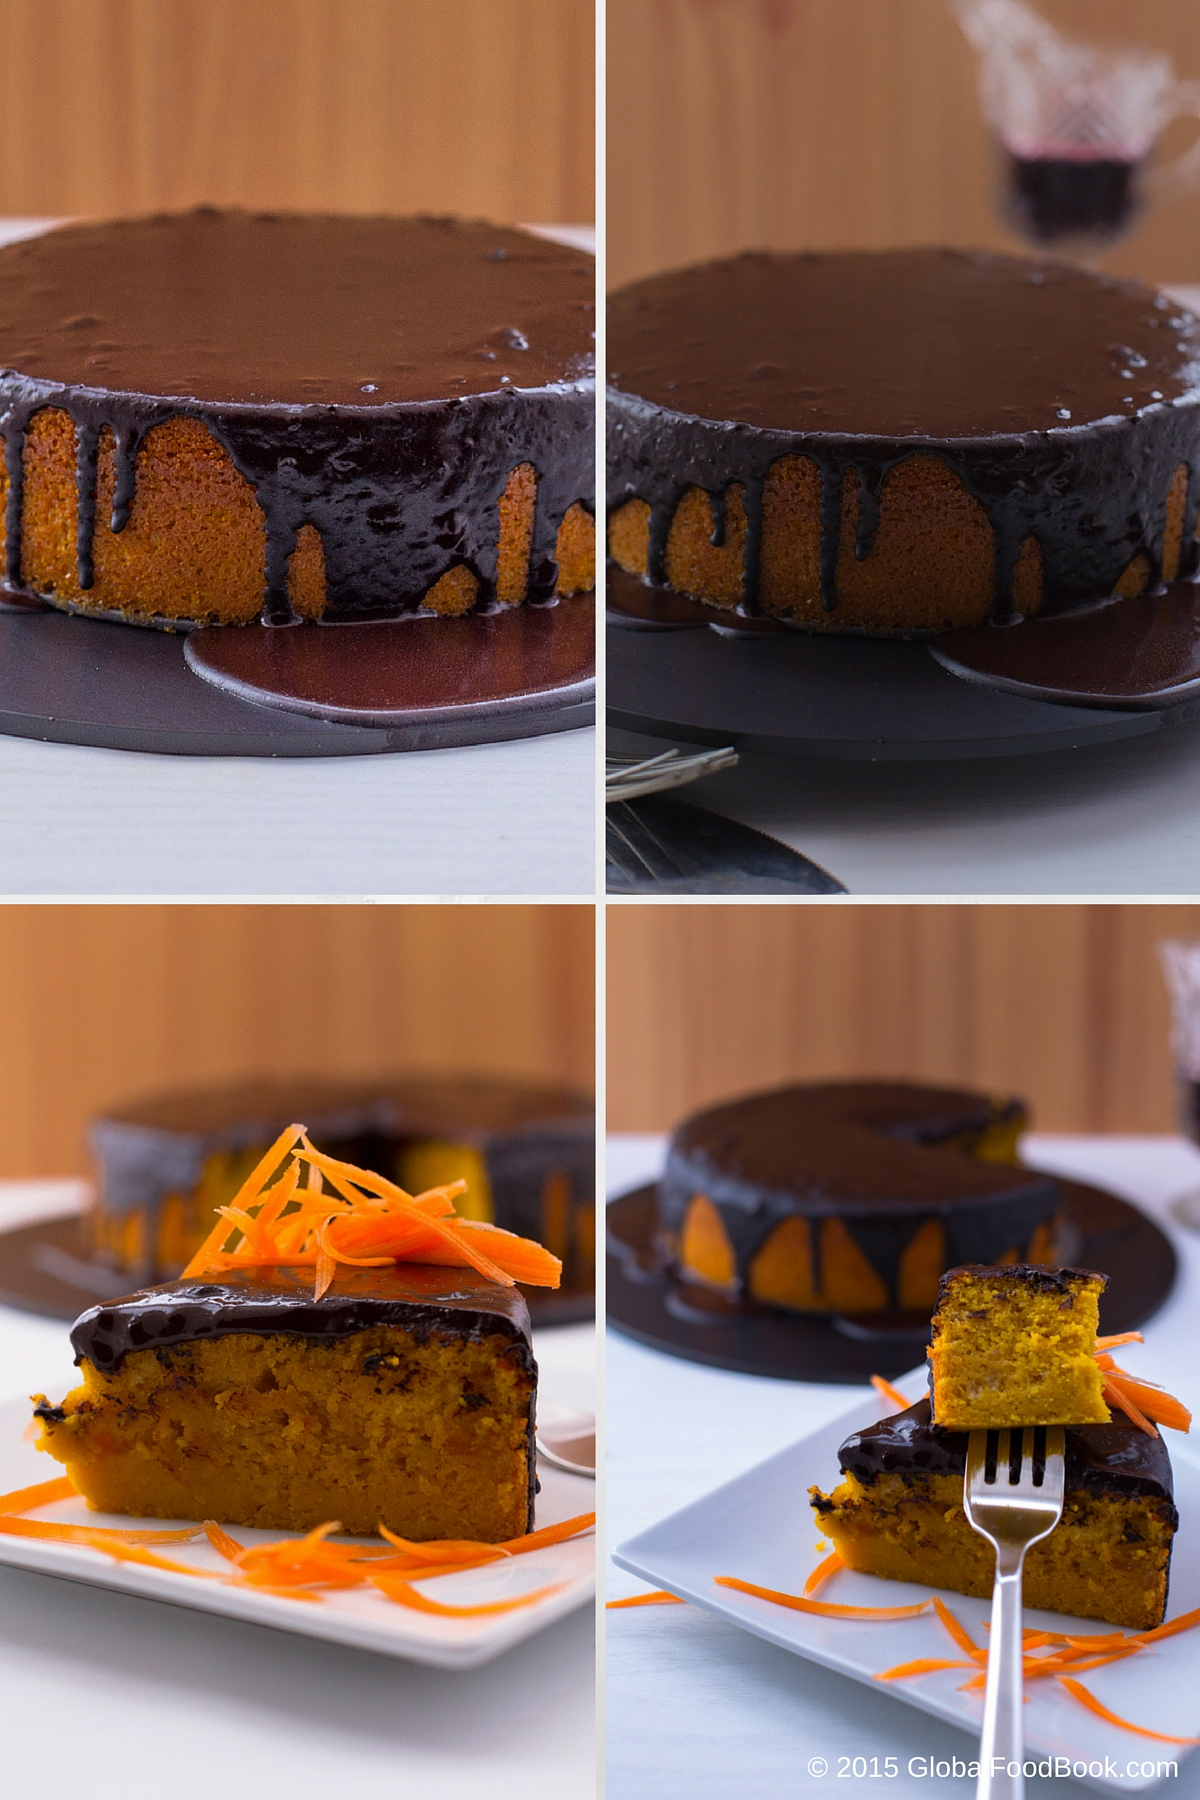 BRAZILIAN CARROT CAKE WITH CHOCOLATE ICING (2)